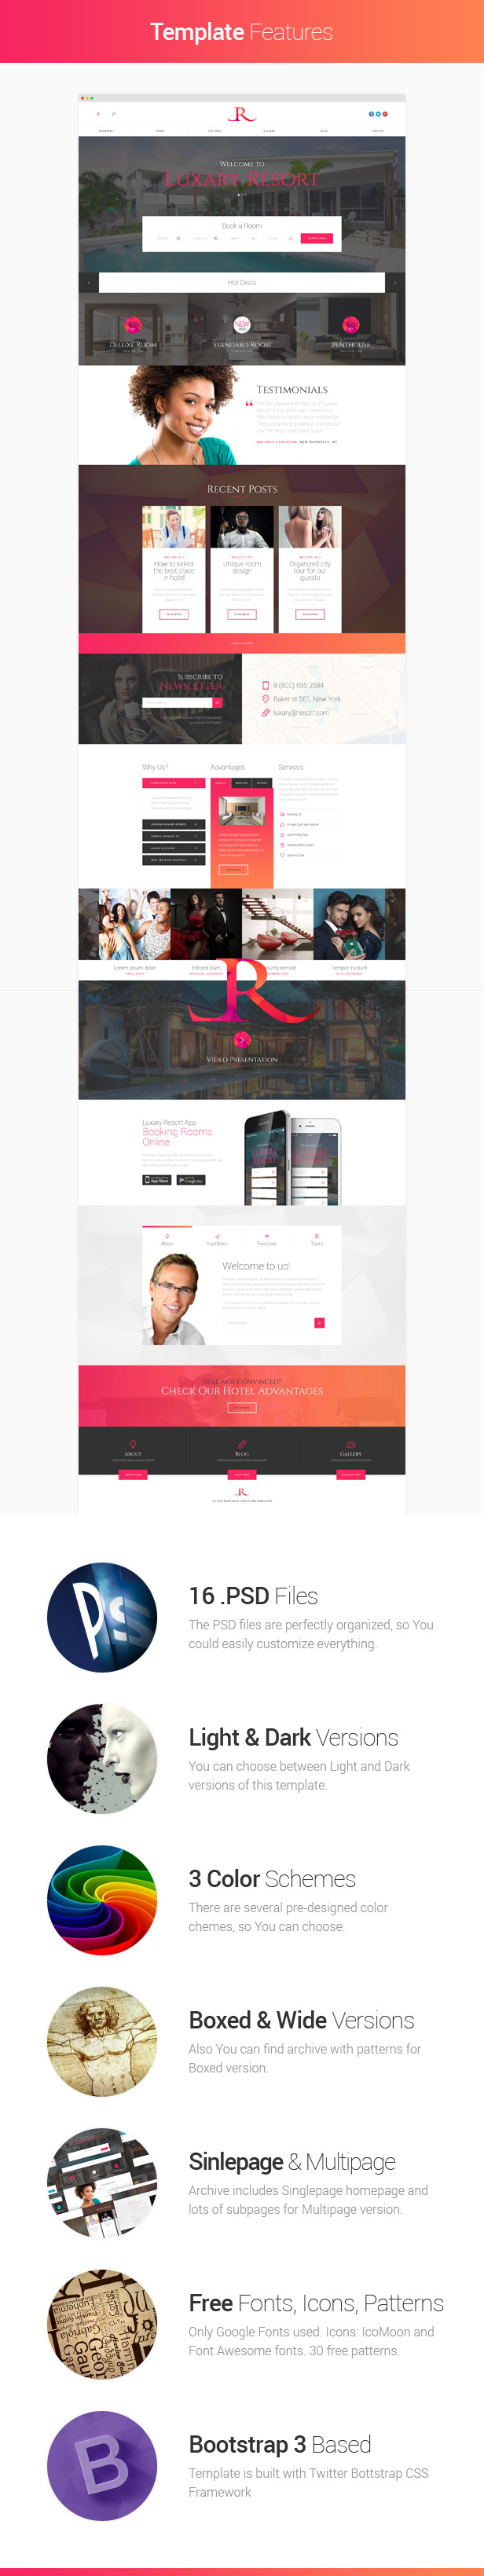 Luxary Resort - Hotel & Resort PSD Template